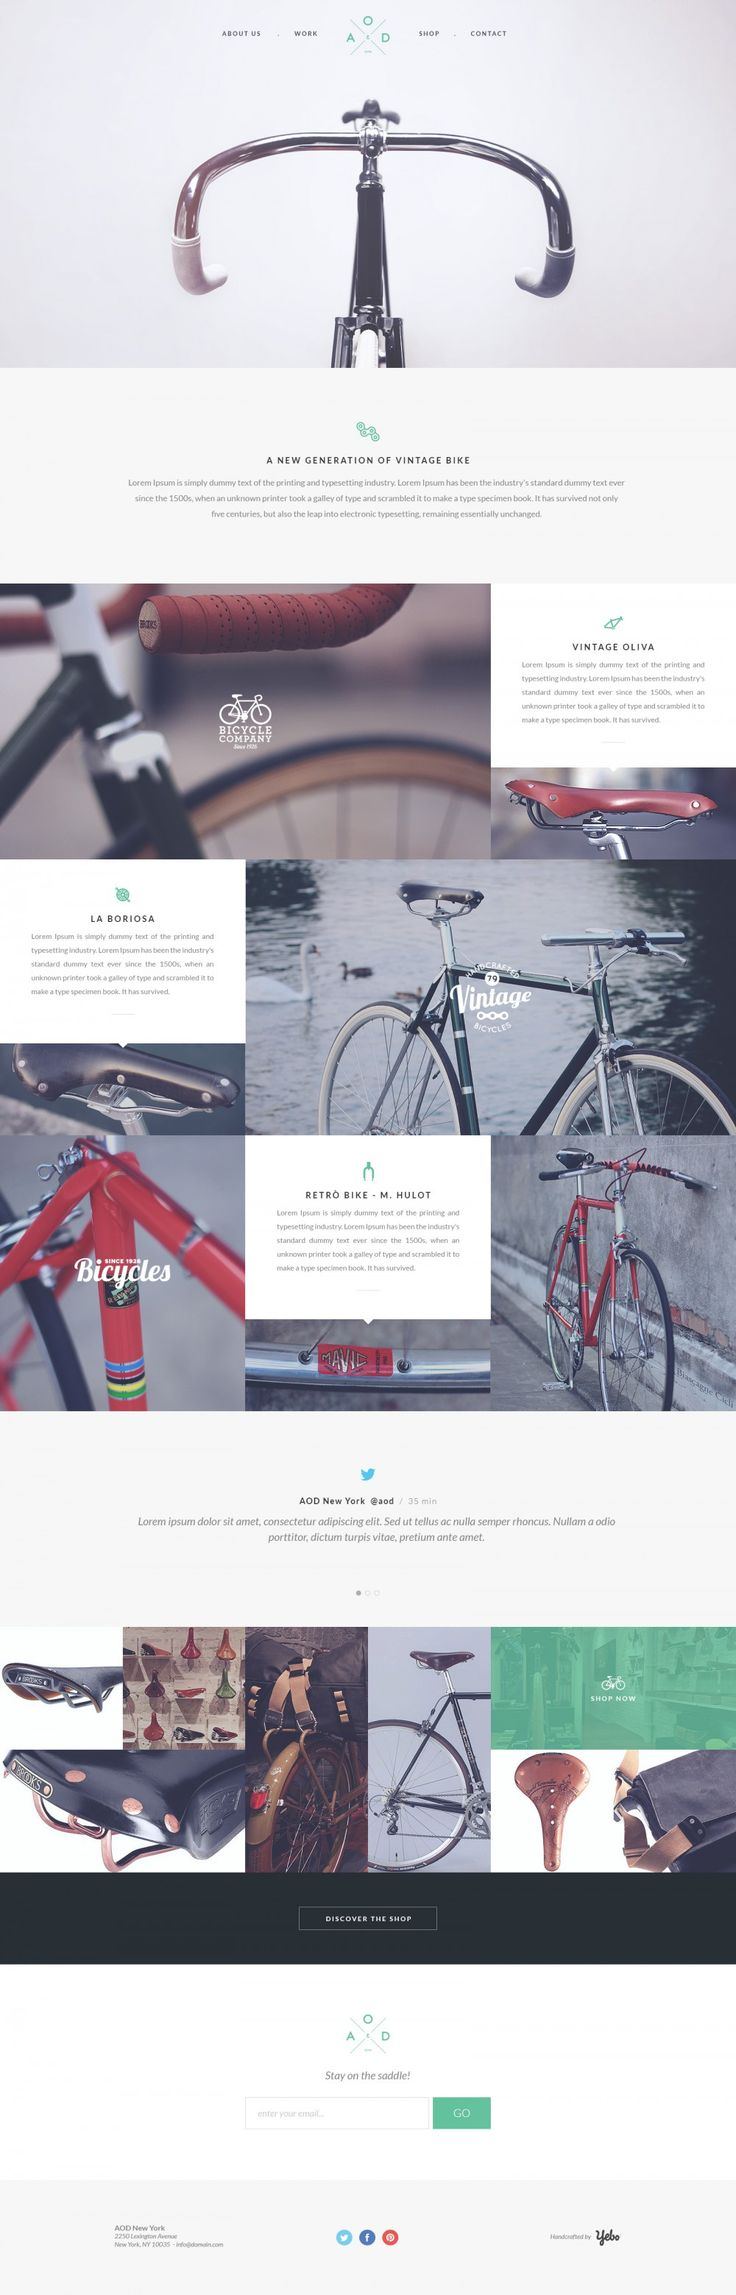 "flat, milky, nice, bikes ""Bicycle Single Page Flat Website Template #grafica #web #bici"""